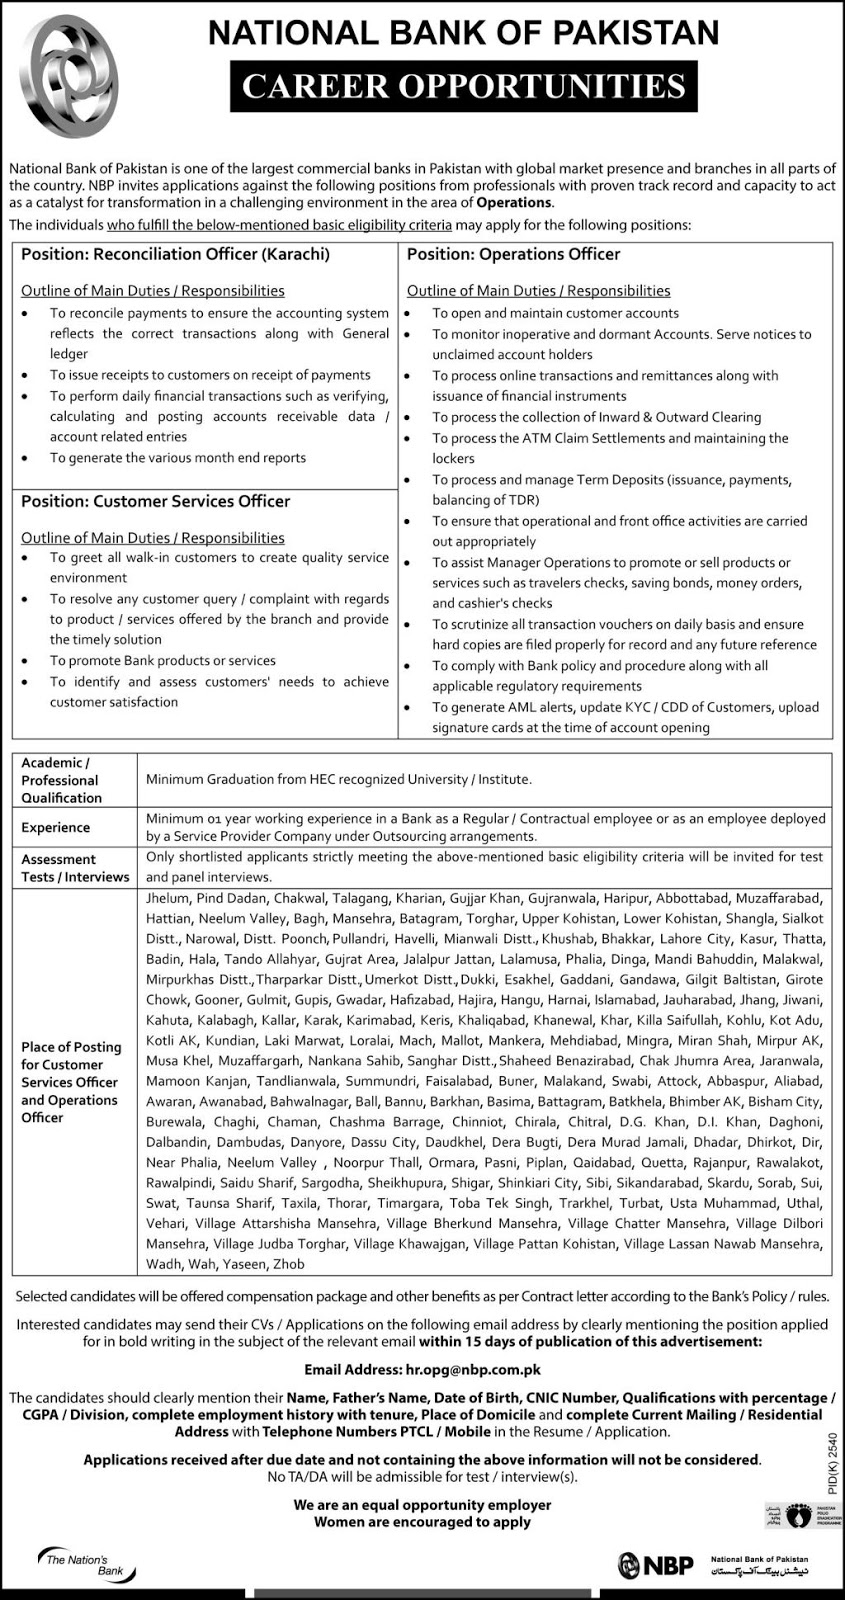 NBP National Bank of Pakistan Jobs 2020 Latest